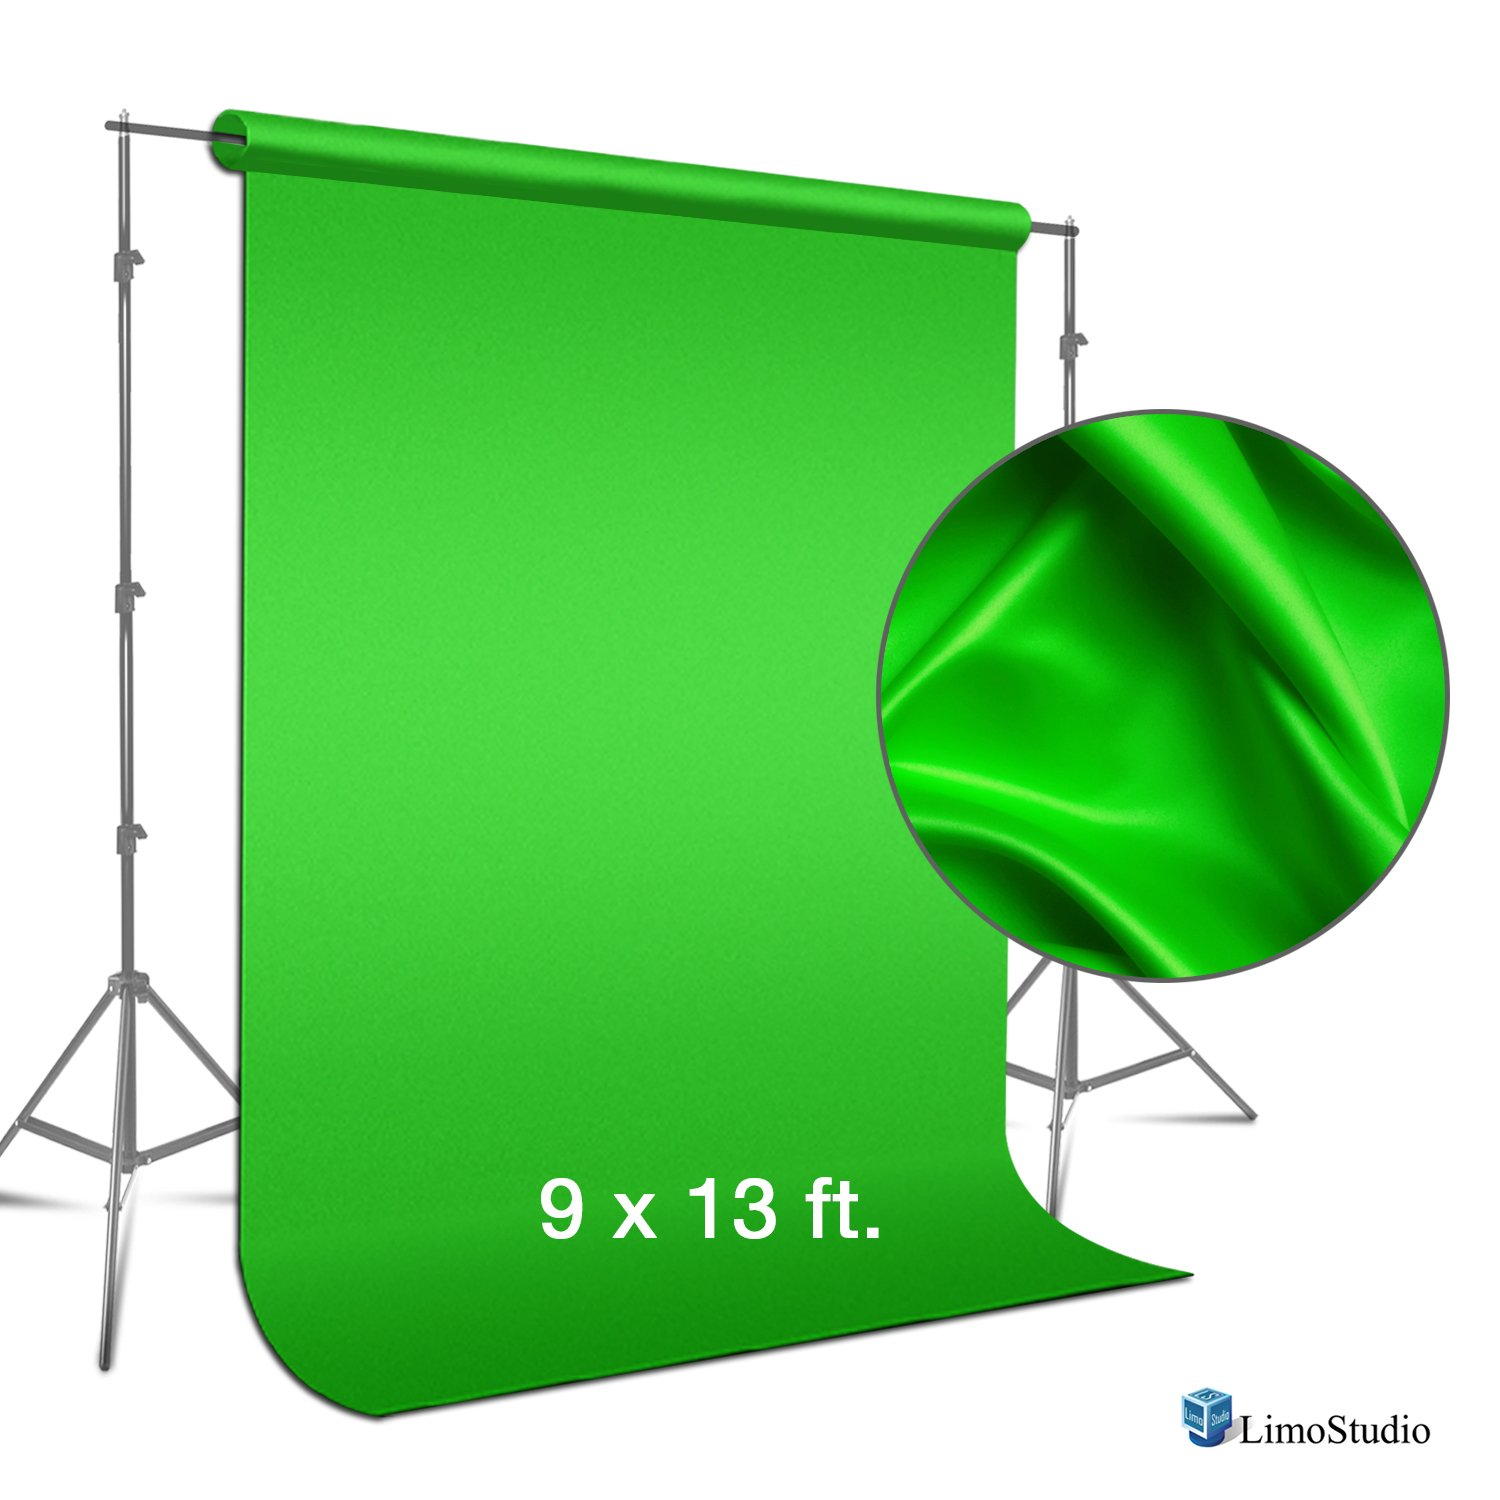 LimoStudio 9 foot x 13 foot Green Fabricated Chromakey Backdrop Background Screen for Photo/Video Studio, AGG1846 by LimoStudio